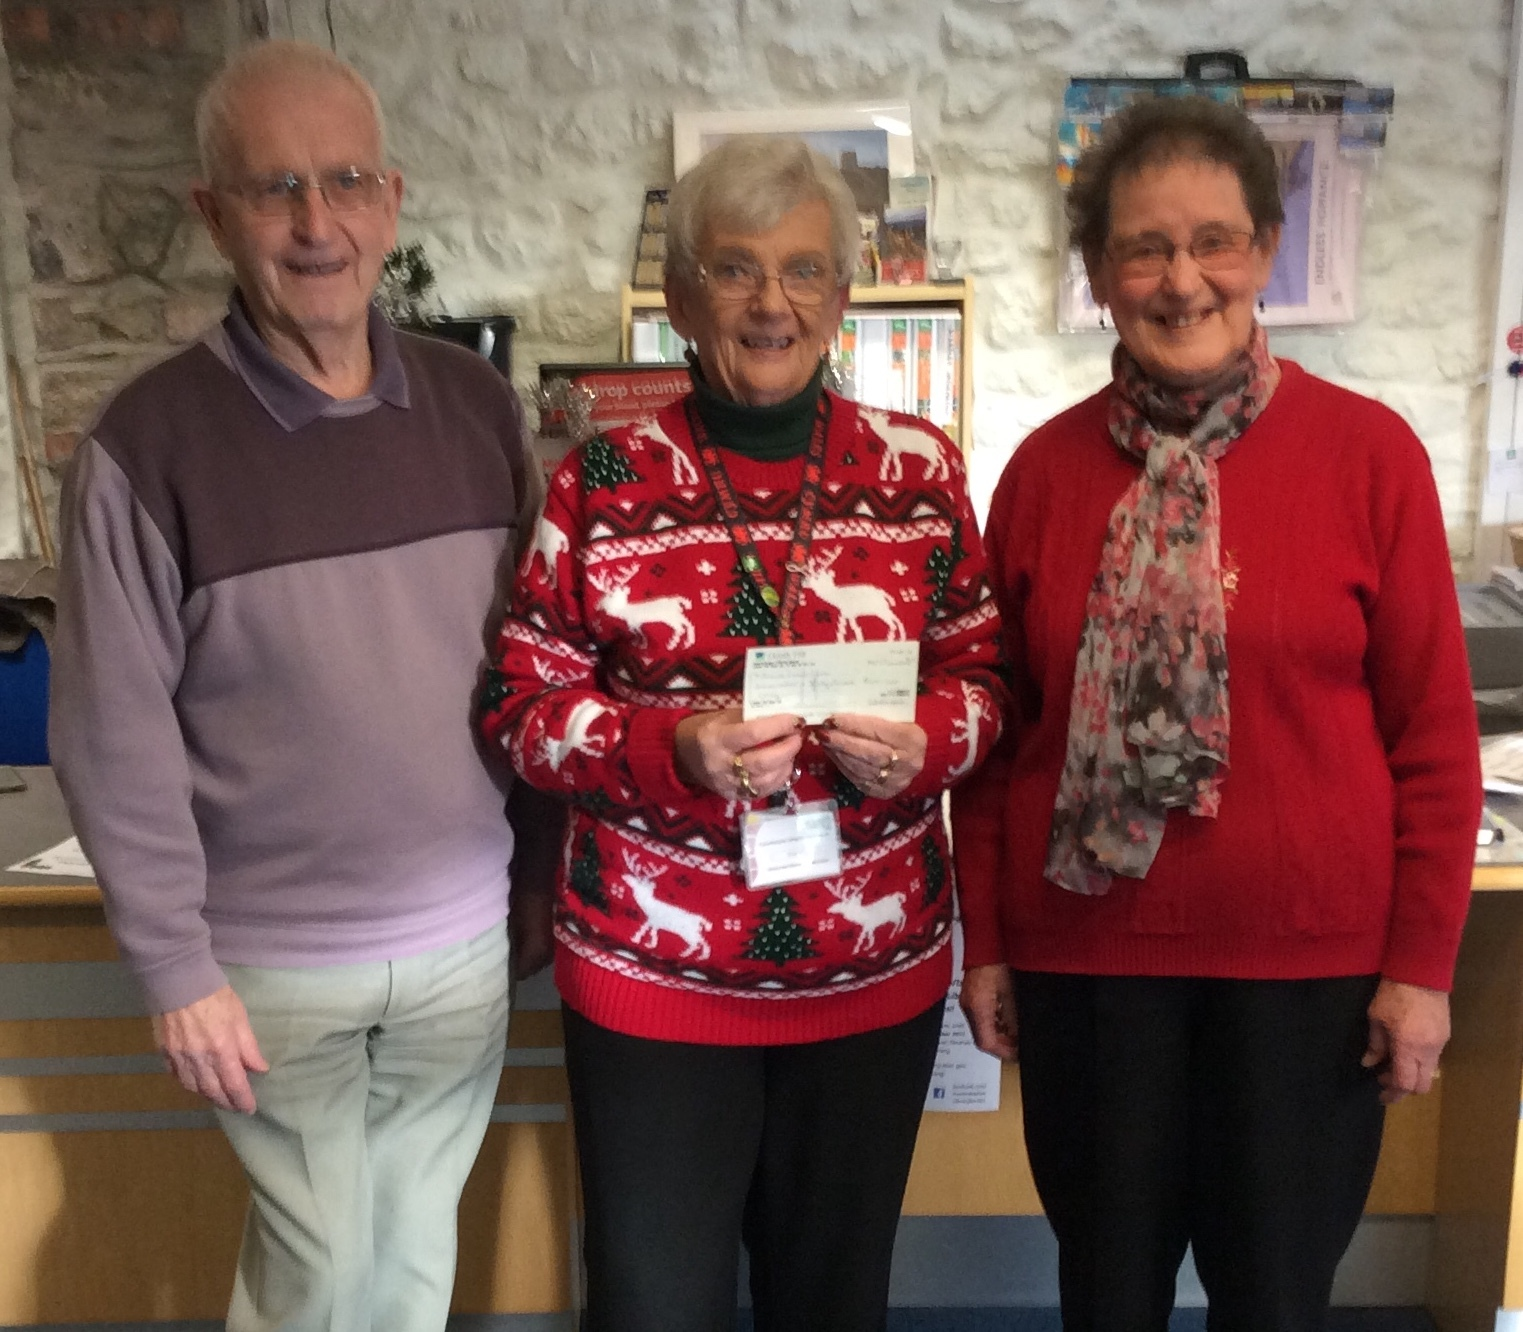 Pictured are Graham and Dot Roberts presenting a cheque for £140 to Sheila Ralph local volunteer for Breast Cancer Care.